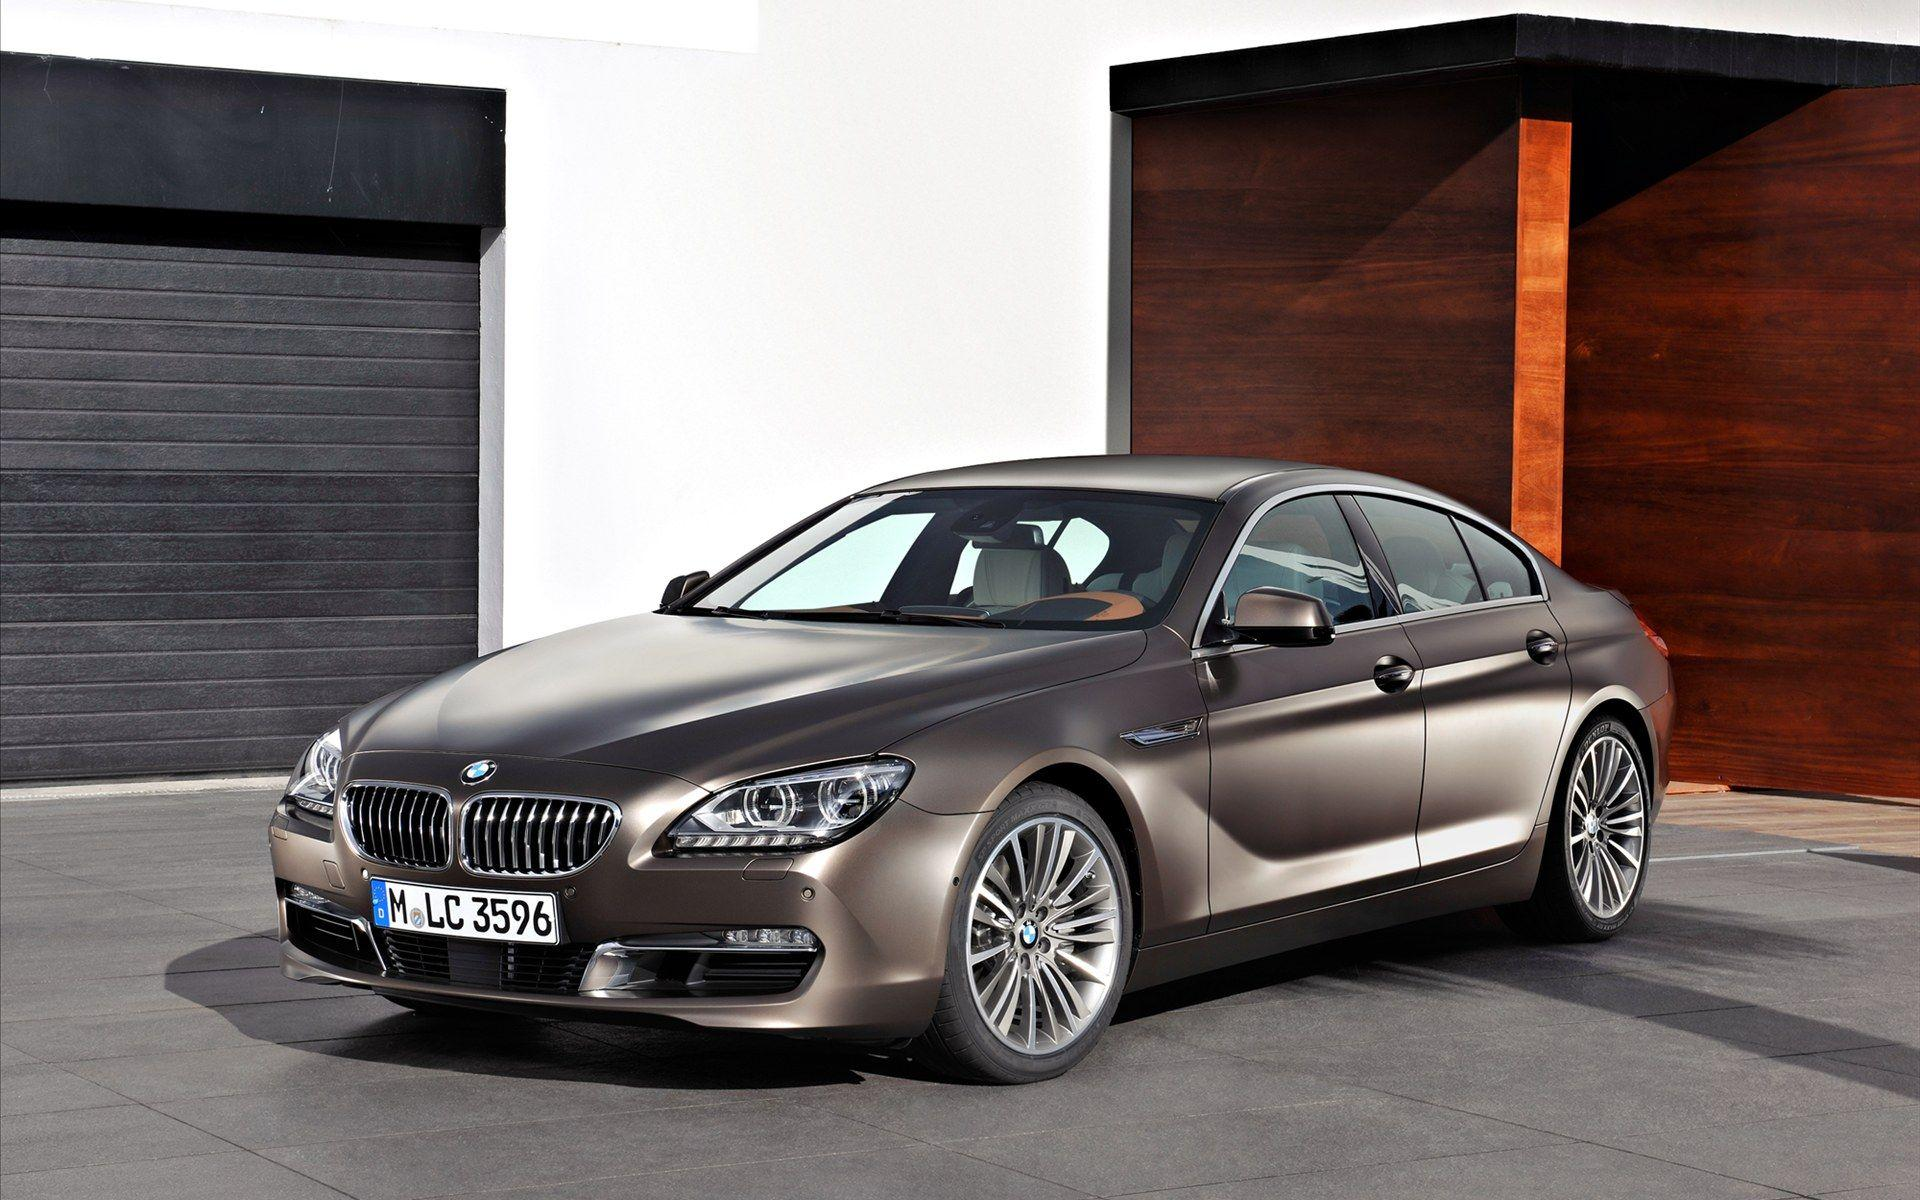 BMW 6 series Upcoming Model